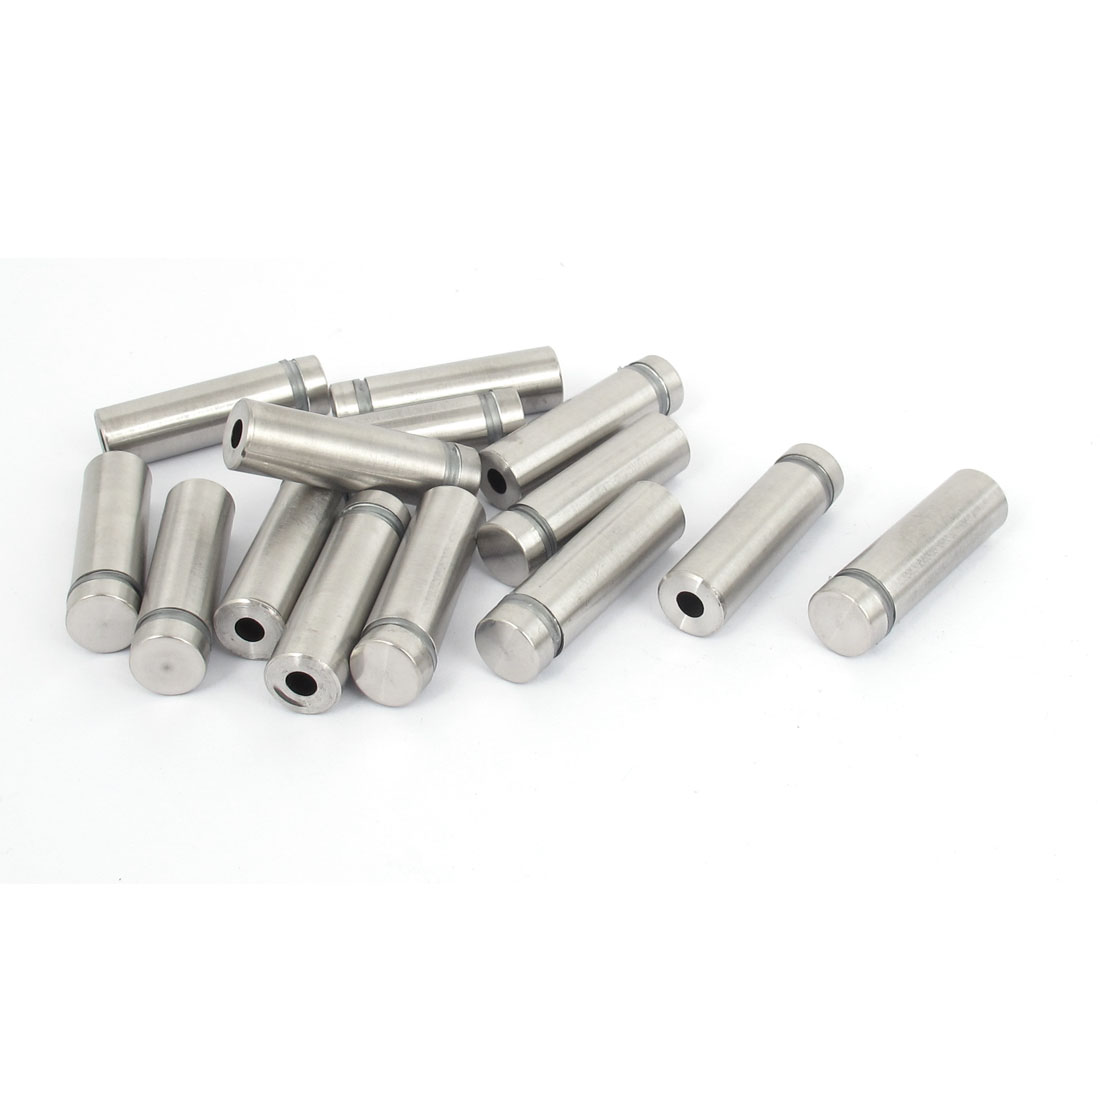 12mm x 40mm Stainless Steel Advertising Frameless Glass Standoff Pins 14pcs